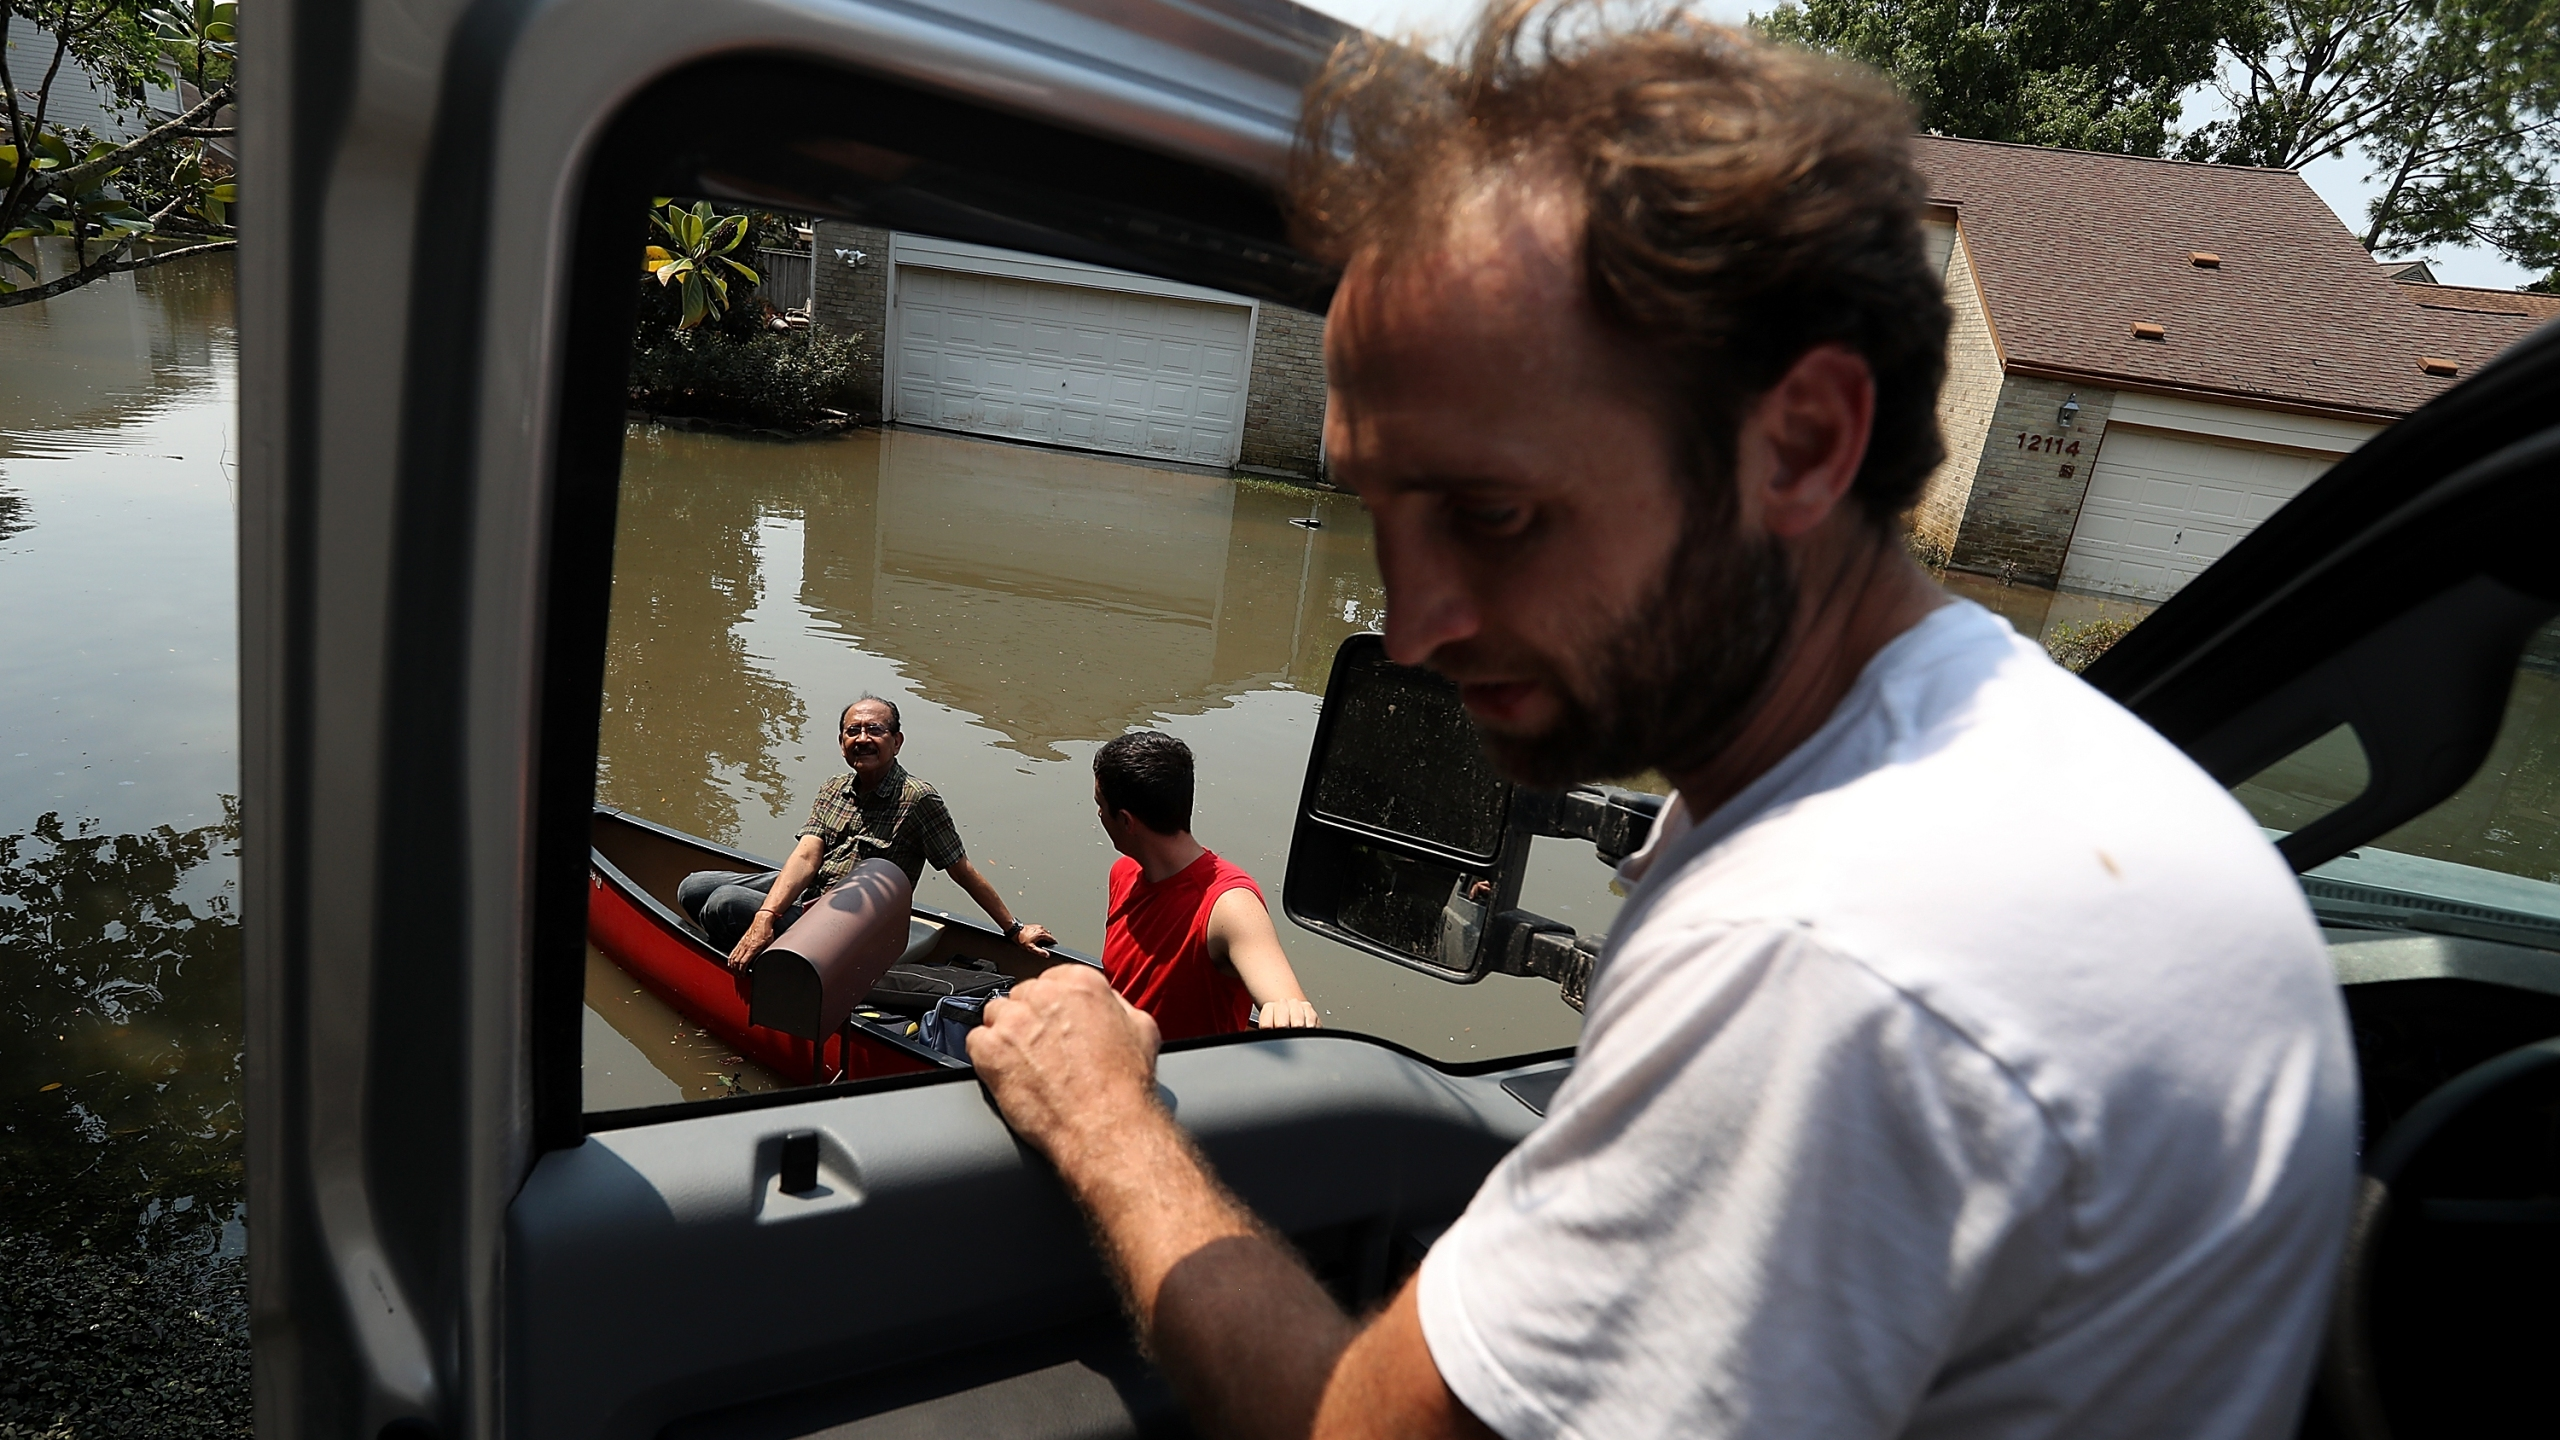 Chris Ginter (right) talks to residents on a boat in a flooded neighborhood on Sept. 6, 2017 in Houston. (Credit: Justin Sullivan/Getty Images)